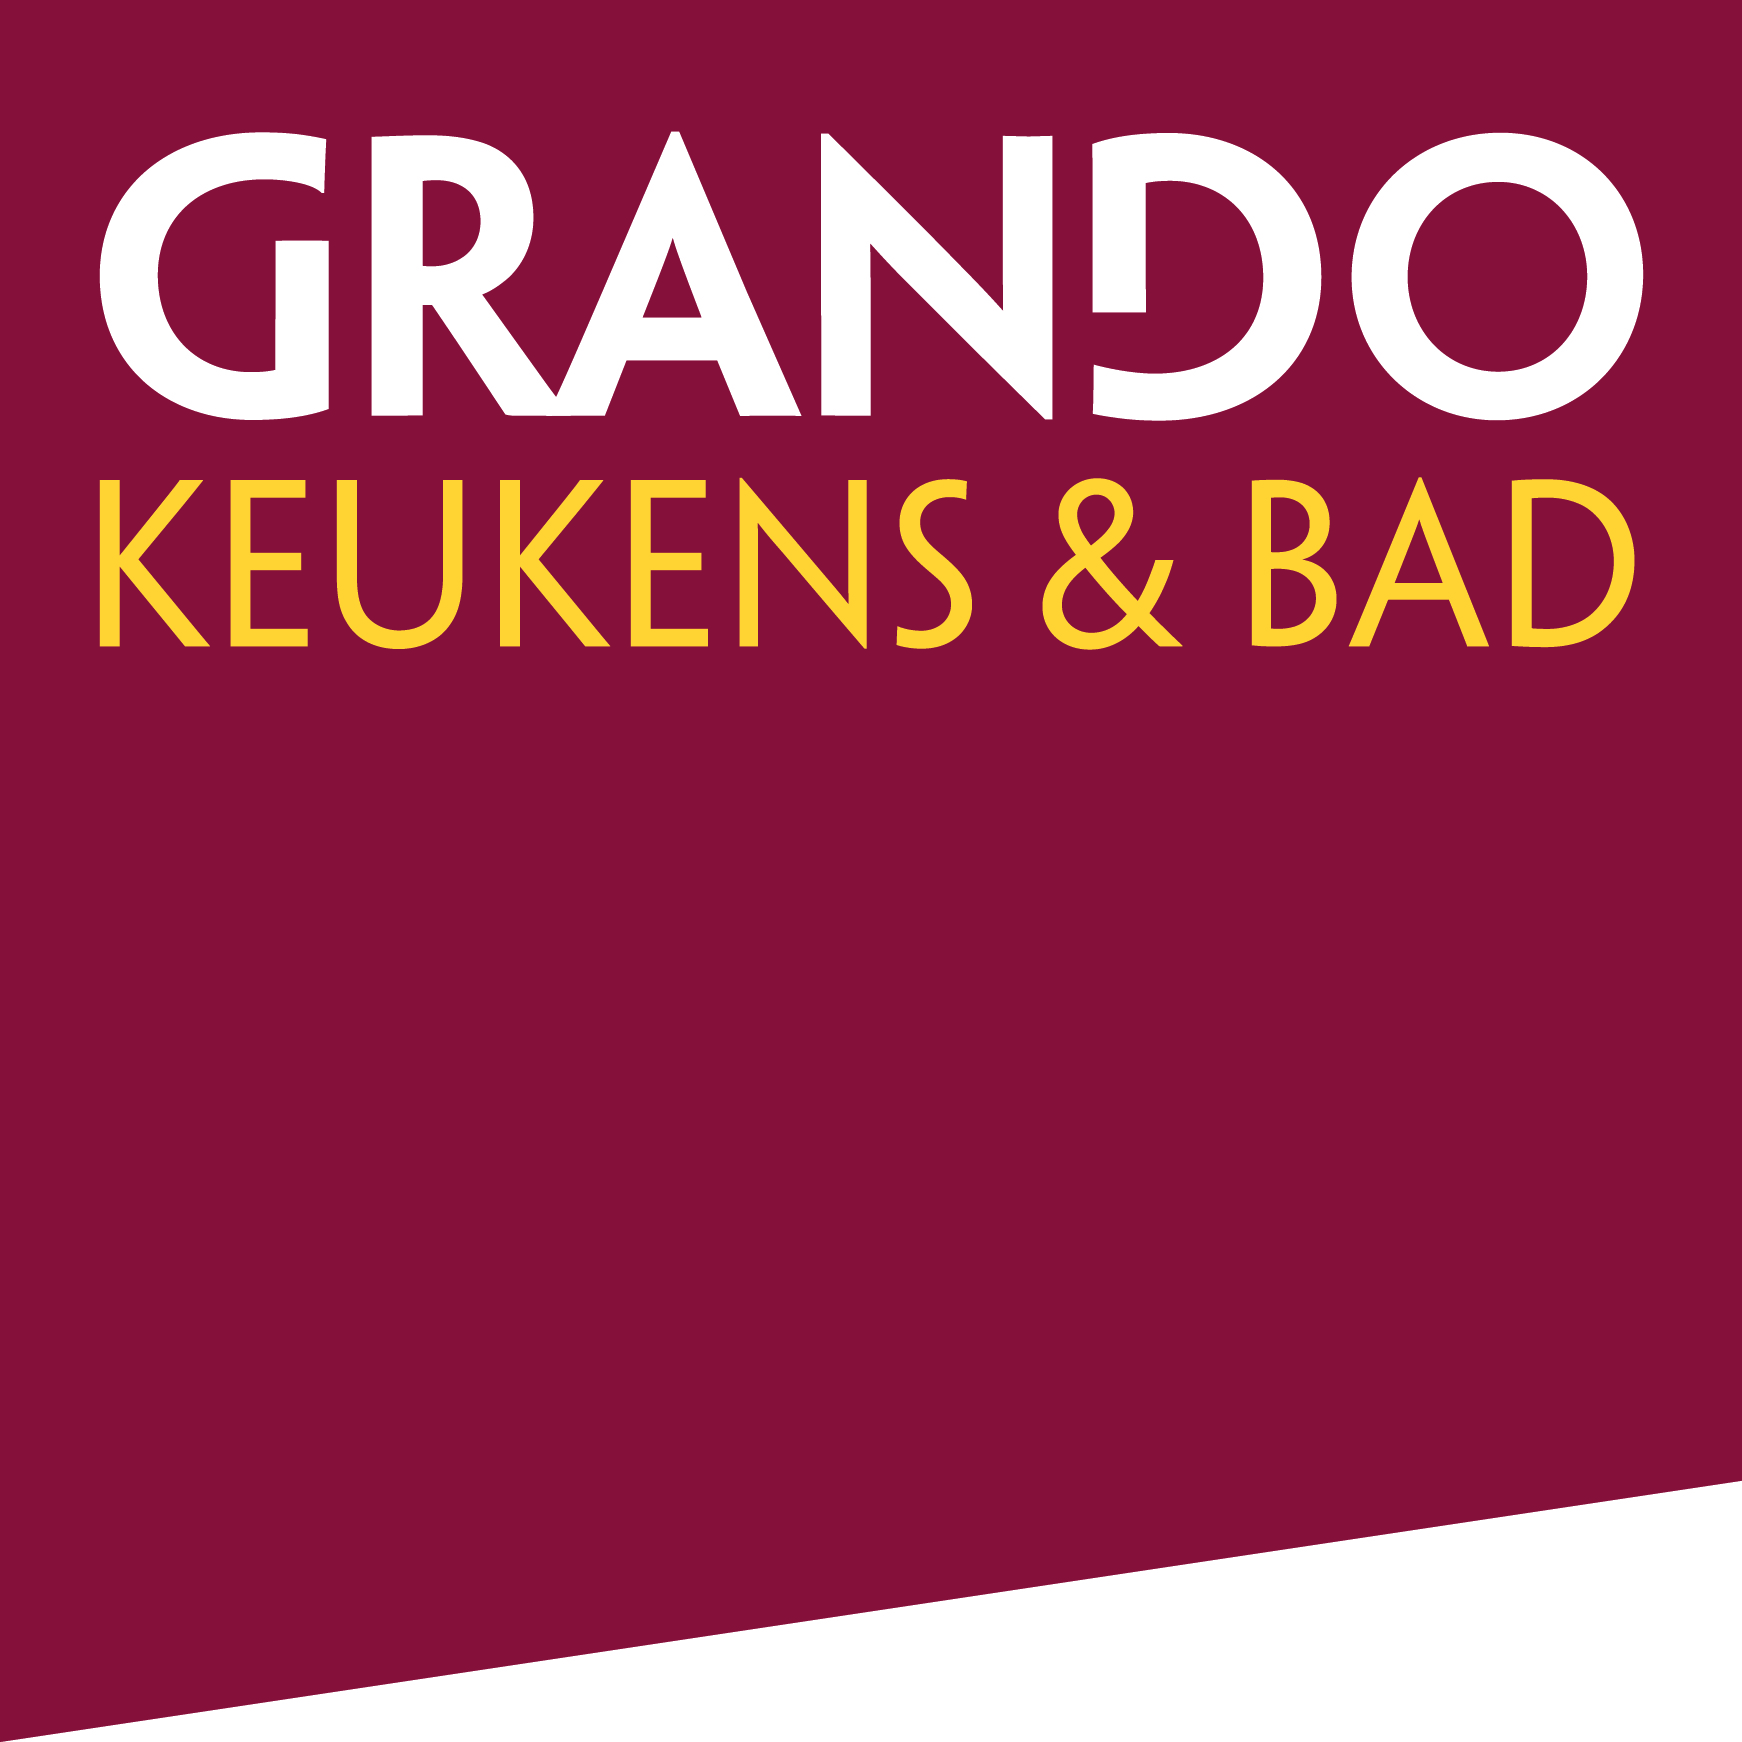 Grando Keukens & Bad Kerkrade